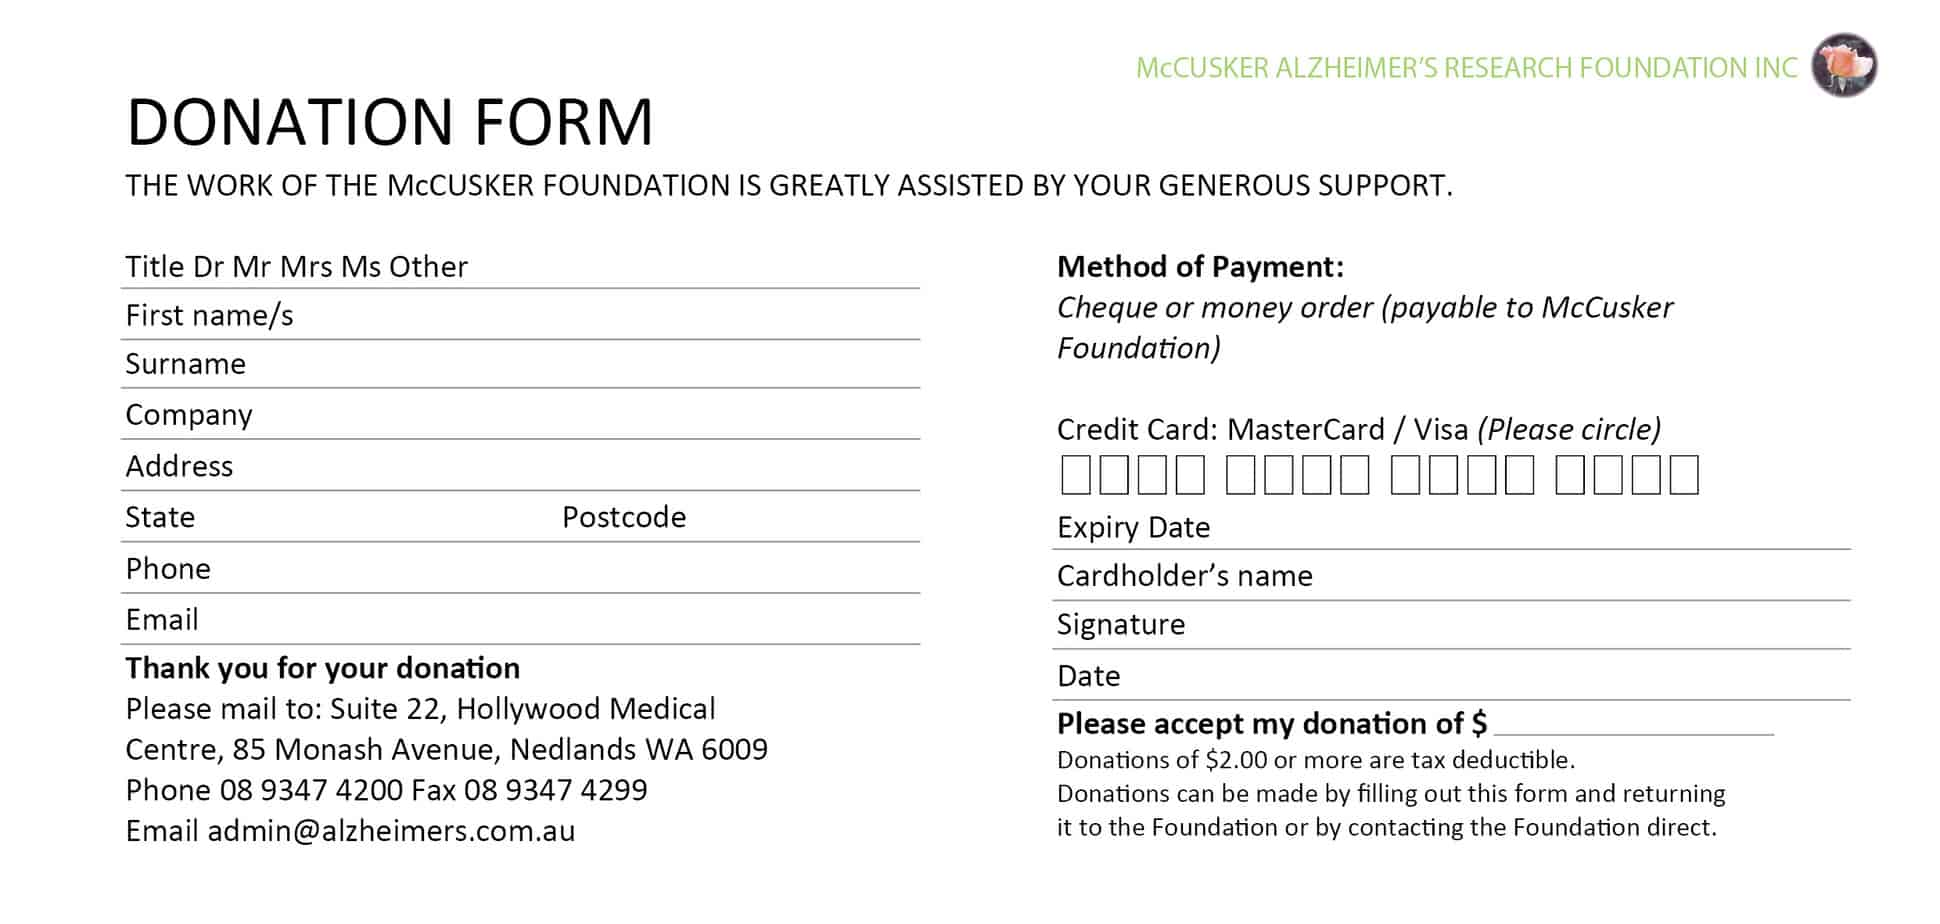 6 Donation Form Templates